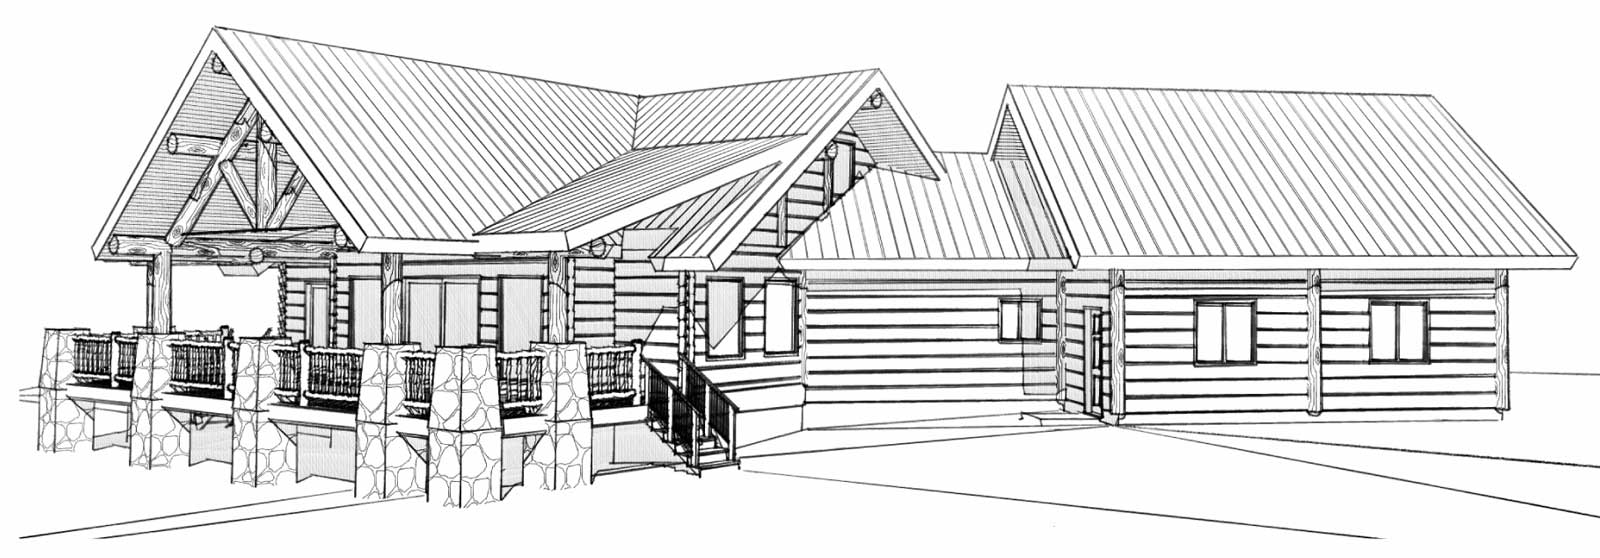 custom designed log home philmont back right view